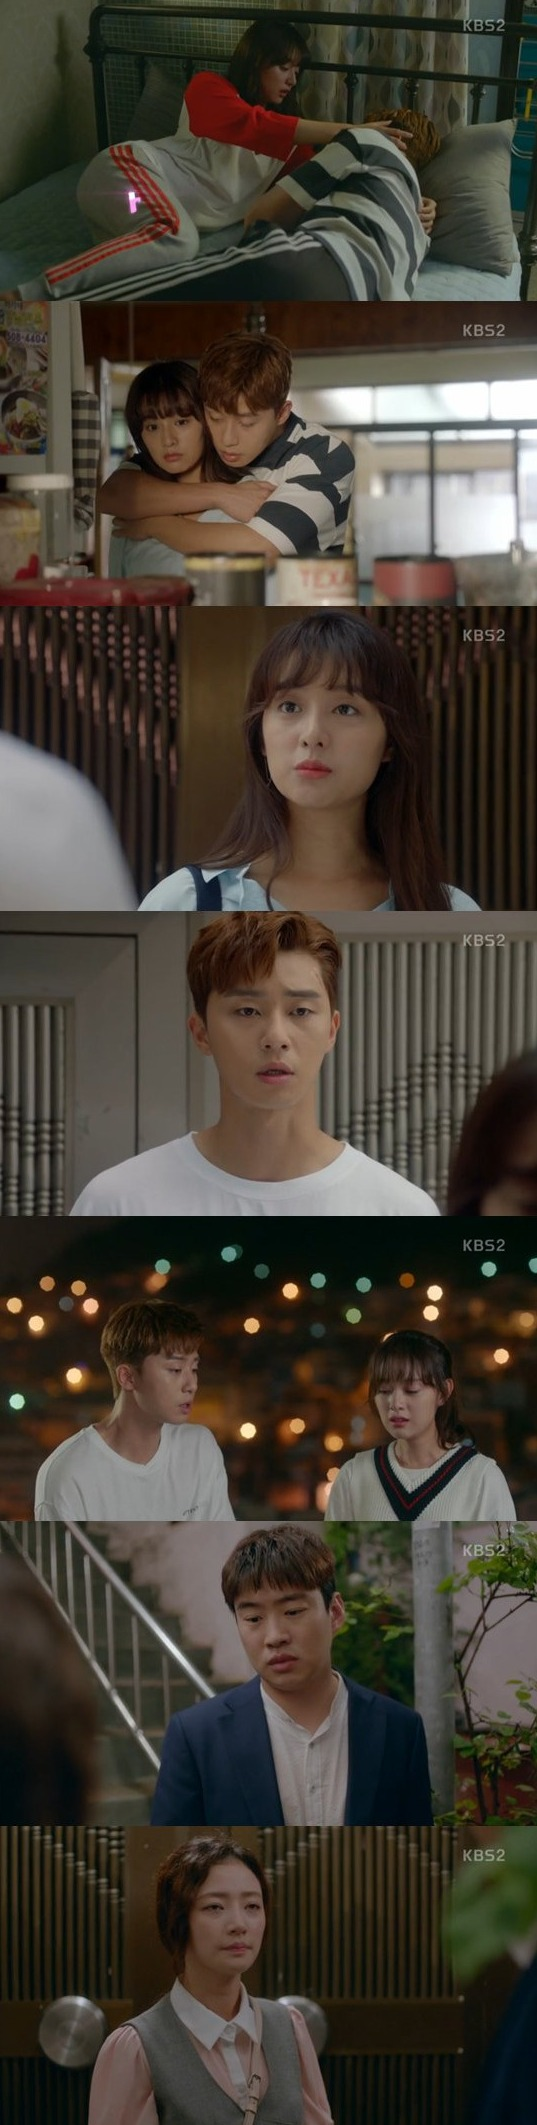 [Spoiler] Added episode 15 captures for the Korean drama 'Fight My Way'